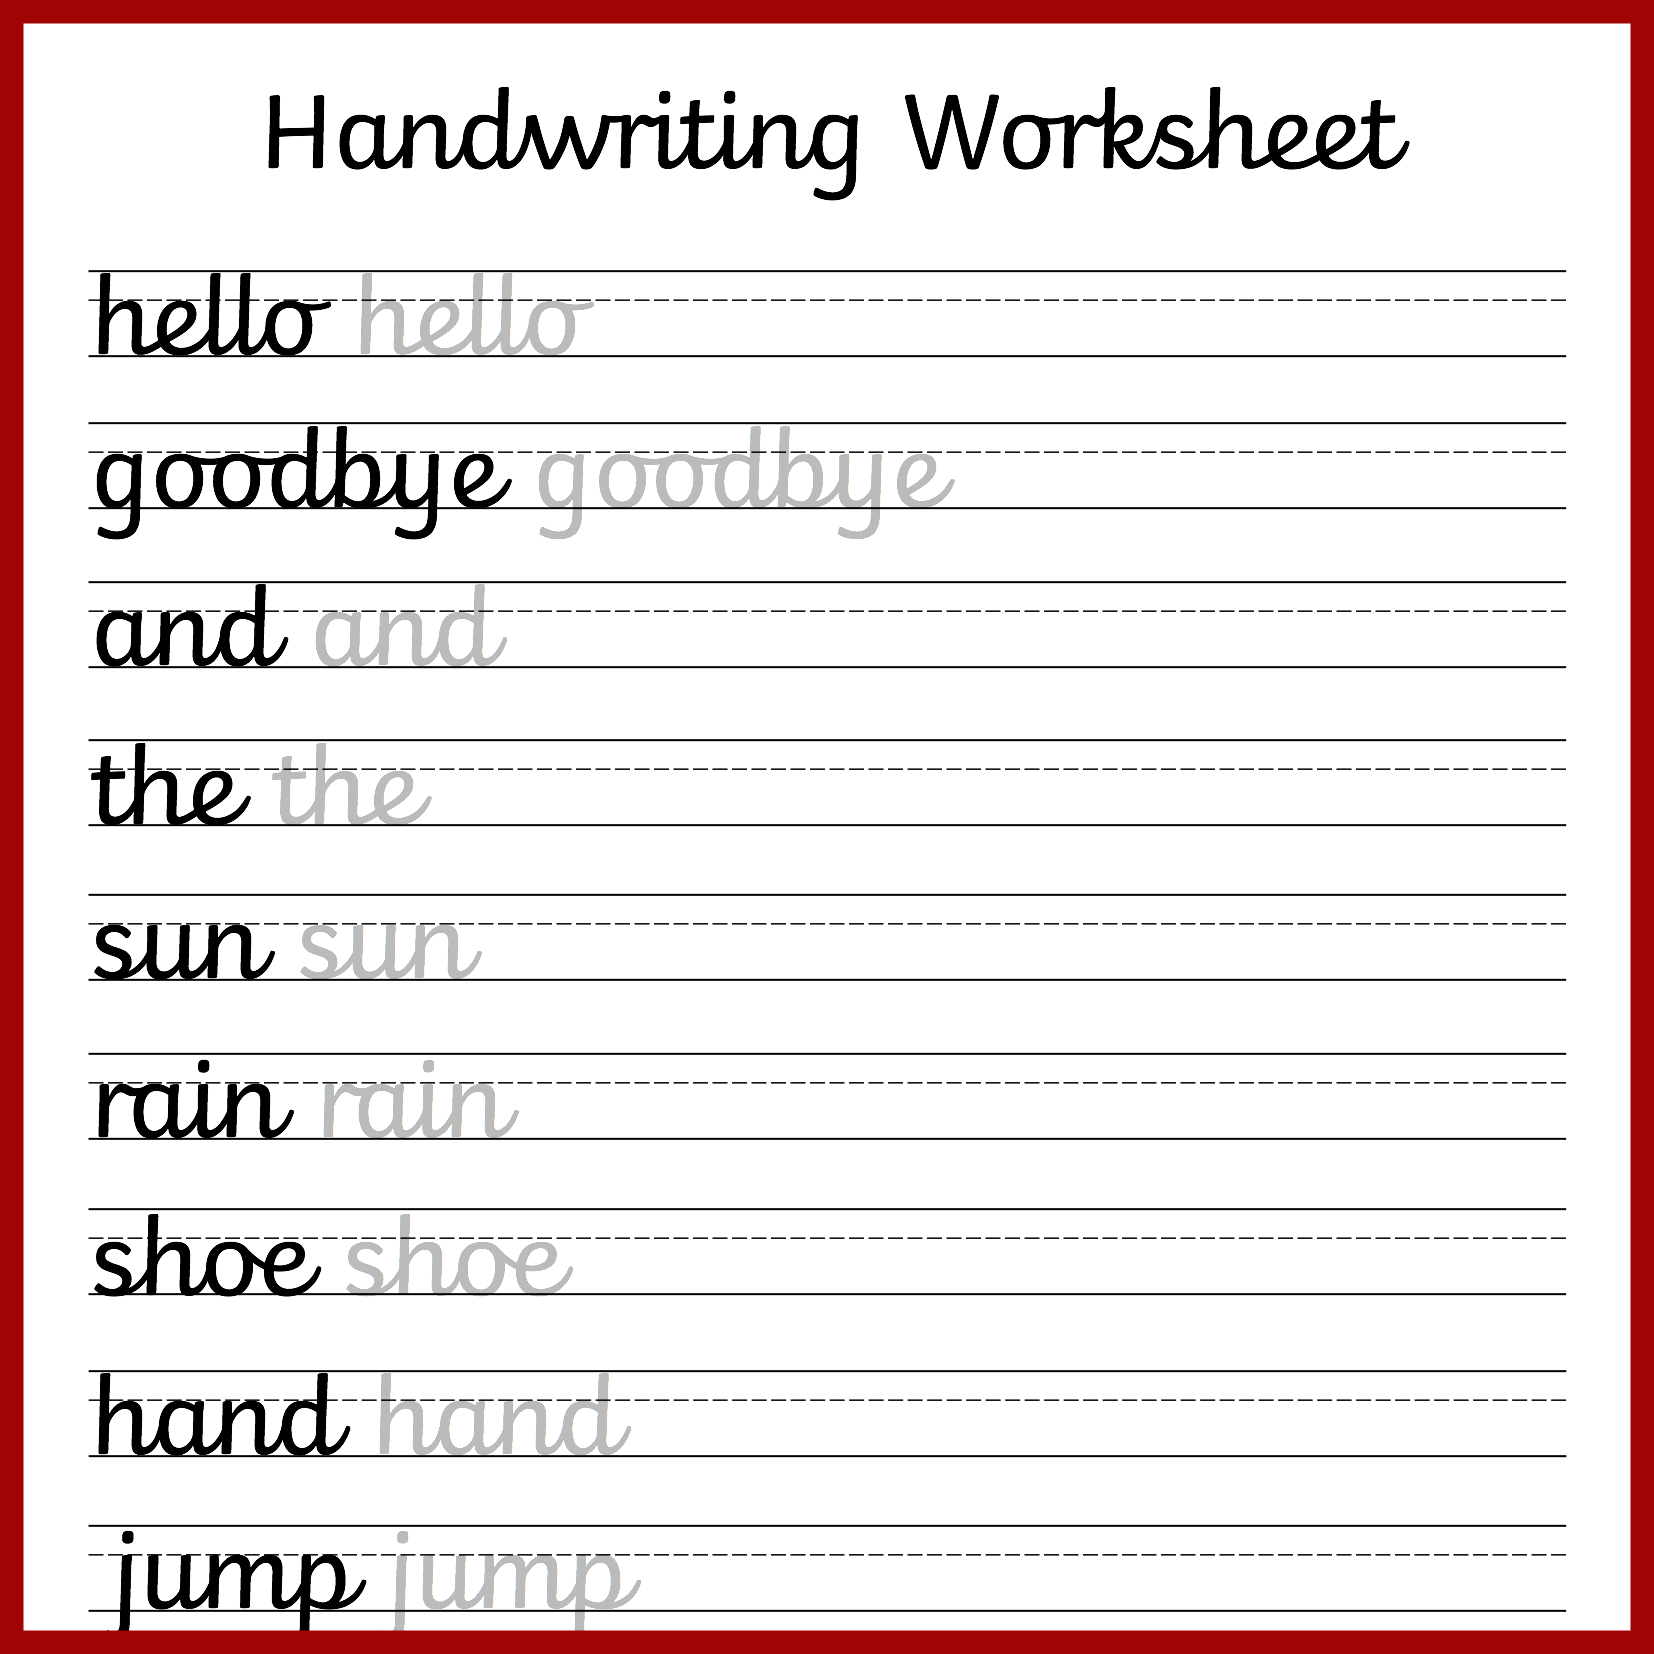 Cursive Handwriting Worksheets – Free Printable! ⋆ Mama Geek - Free Printable Cursive Handwriting Worksheets